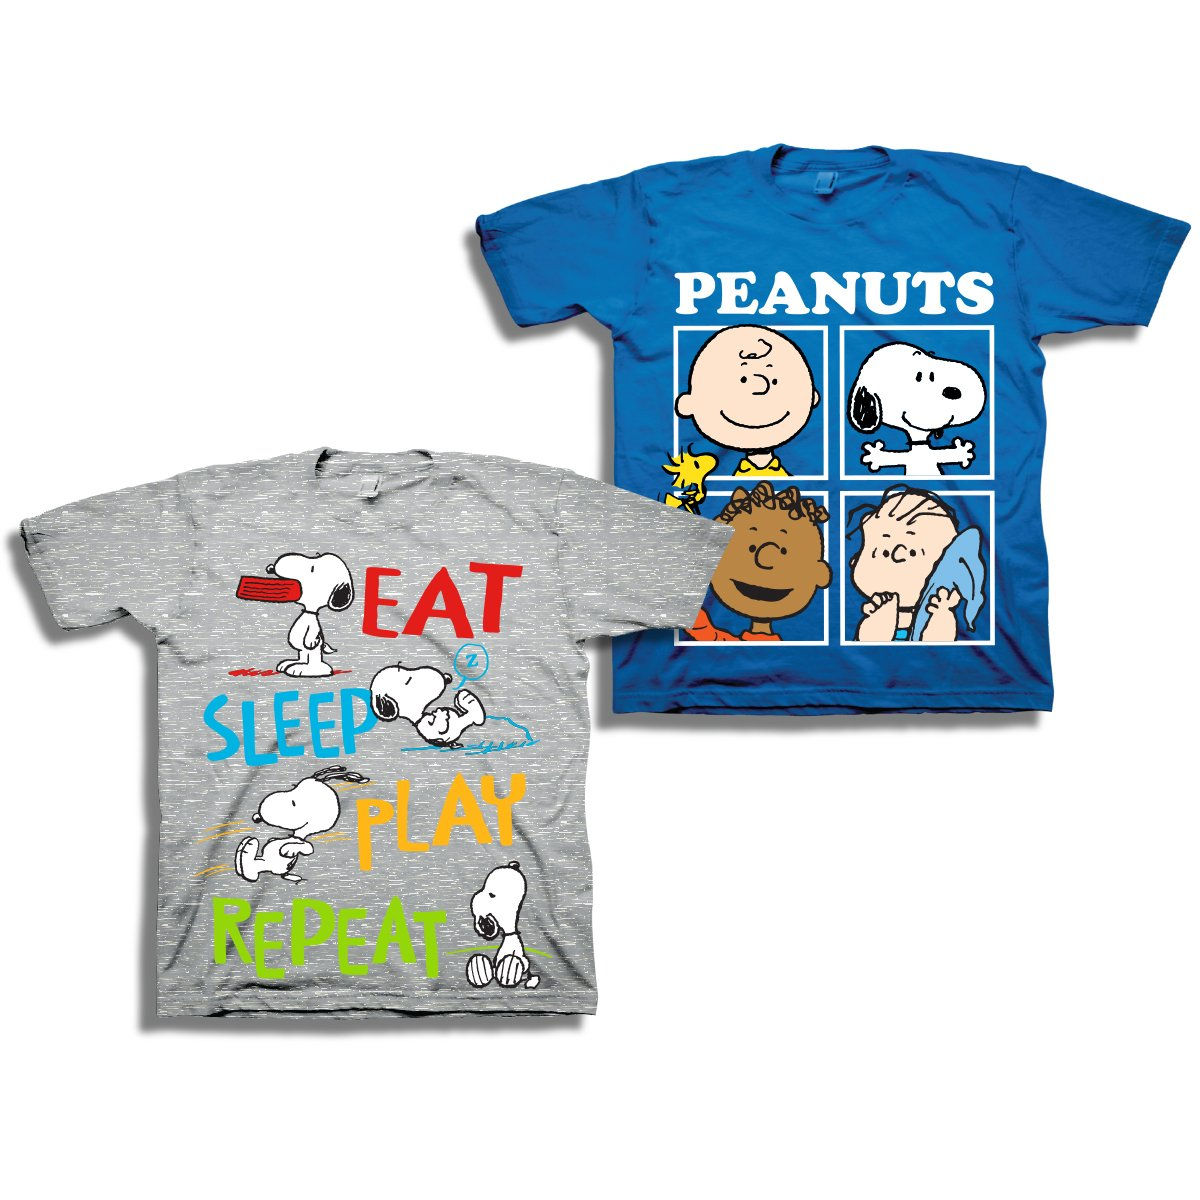 324c4947 FAVORITE CHARACTERS: Get your 2 Pack of T-shirts featuring your favorite  Peanuts characters. Each tee has a colorful print with your favorite Peanuts  ...